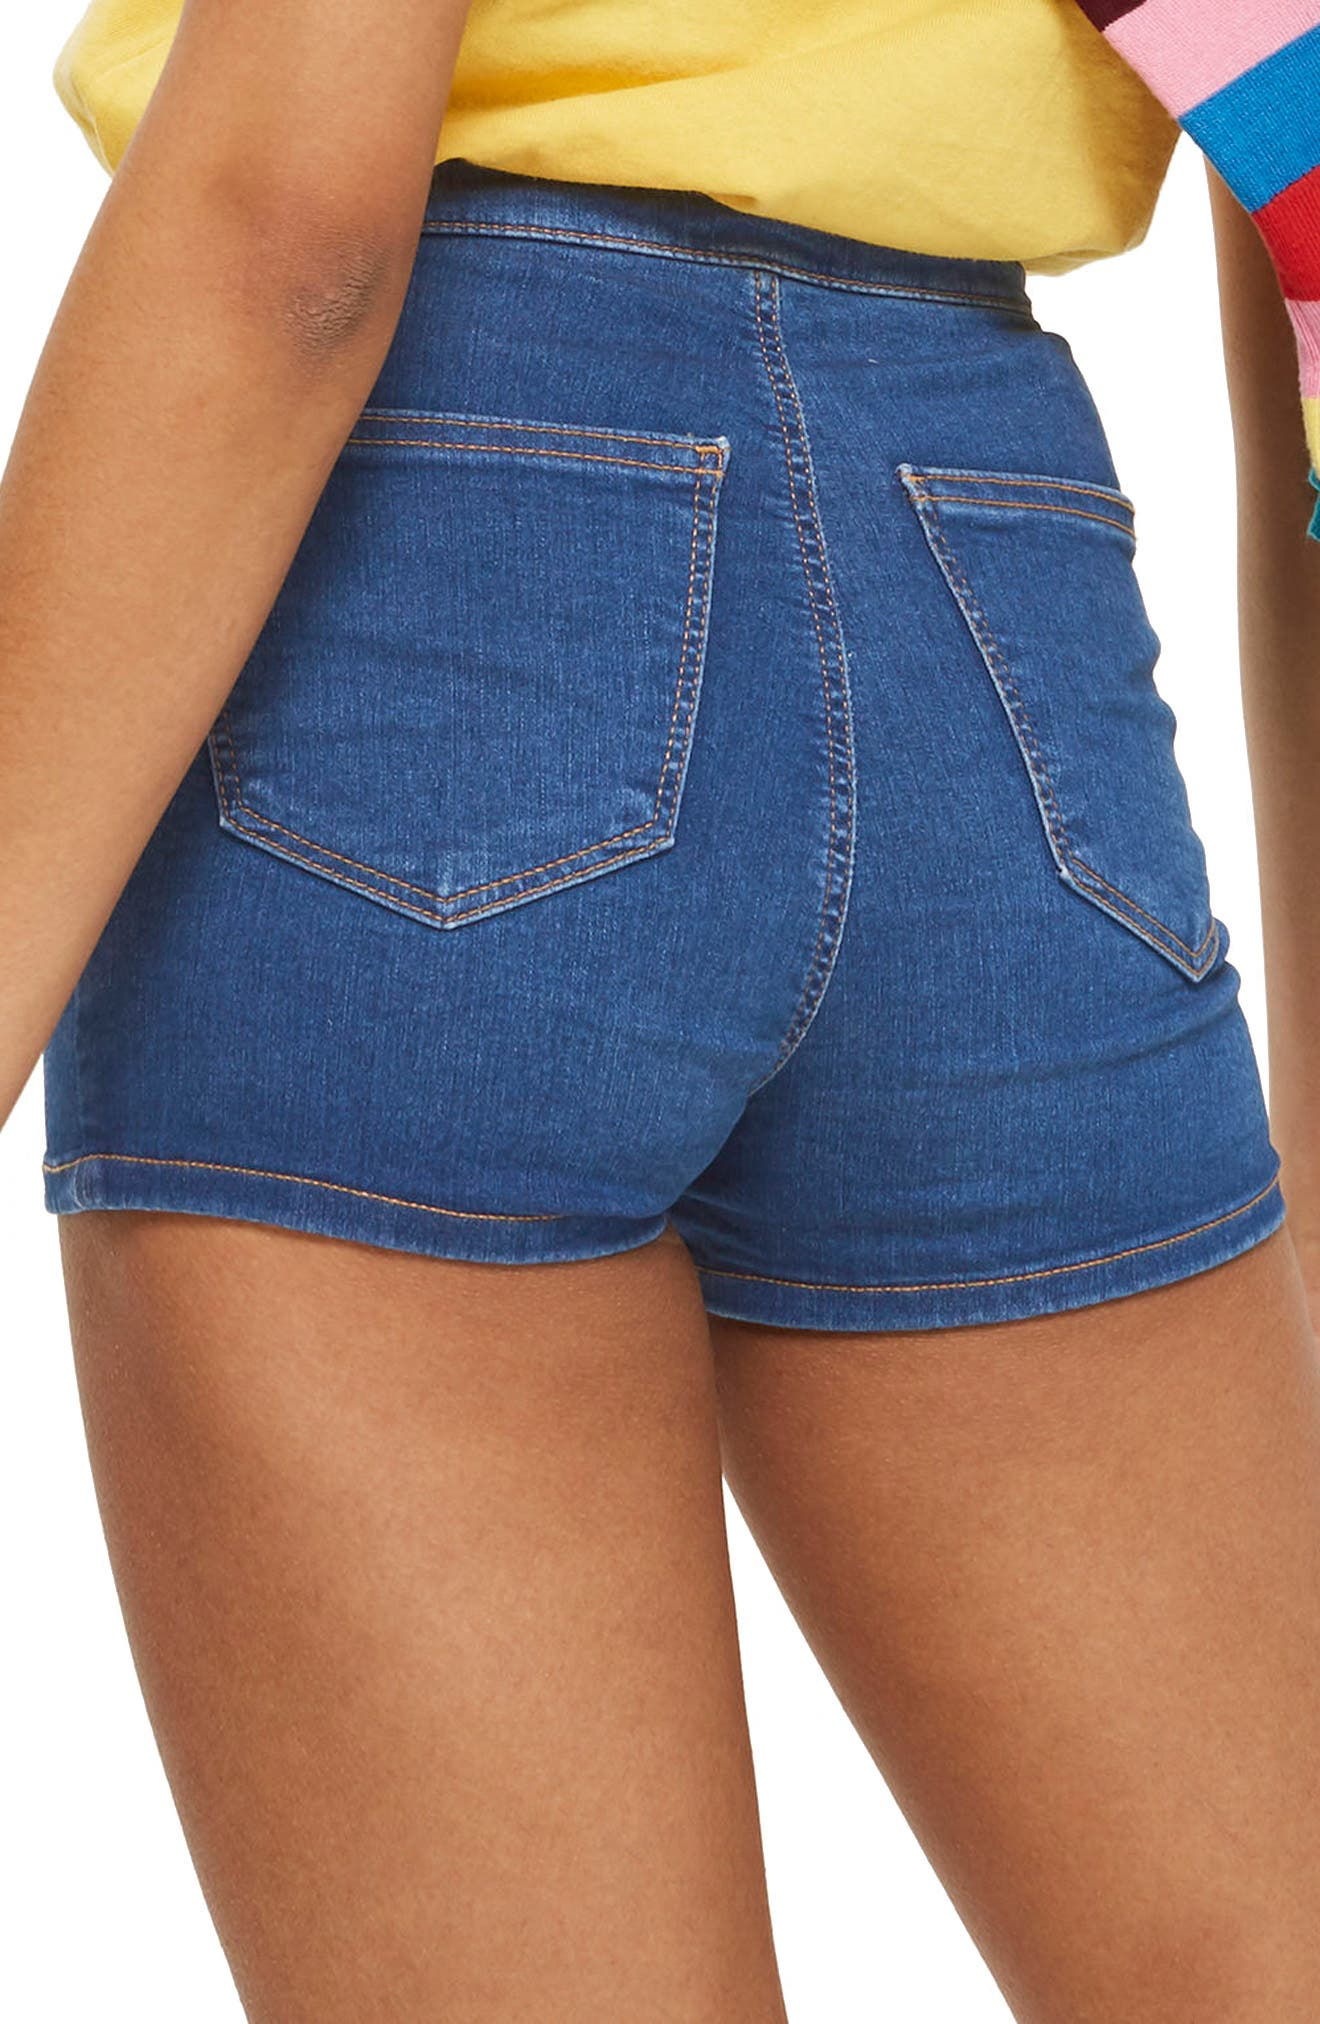 MOTO Joni Mid Denim Shorts,                             Alternate thumbnail 3, color,                             Mid Denim